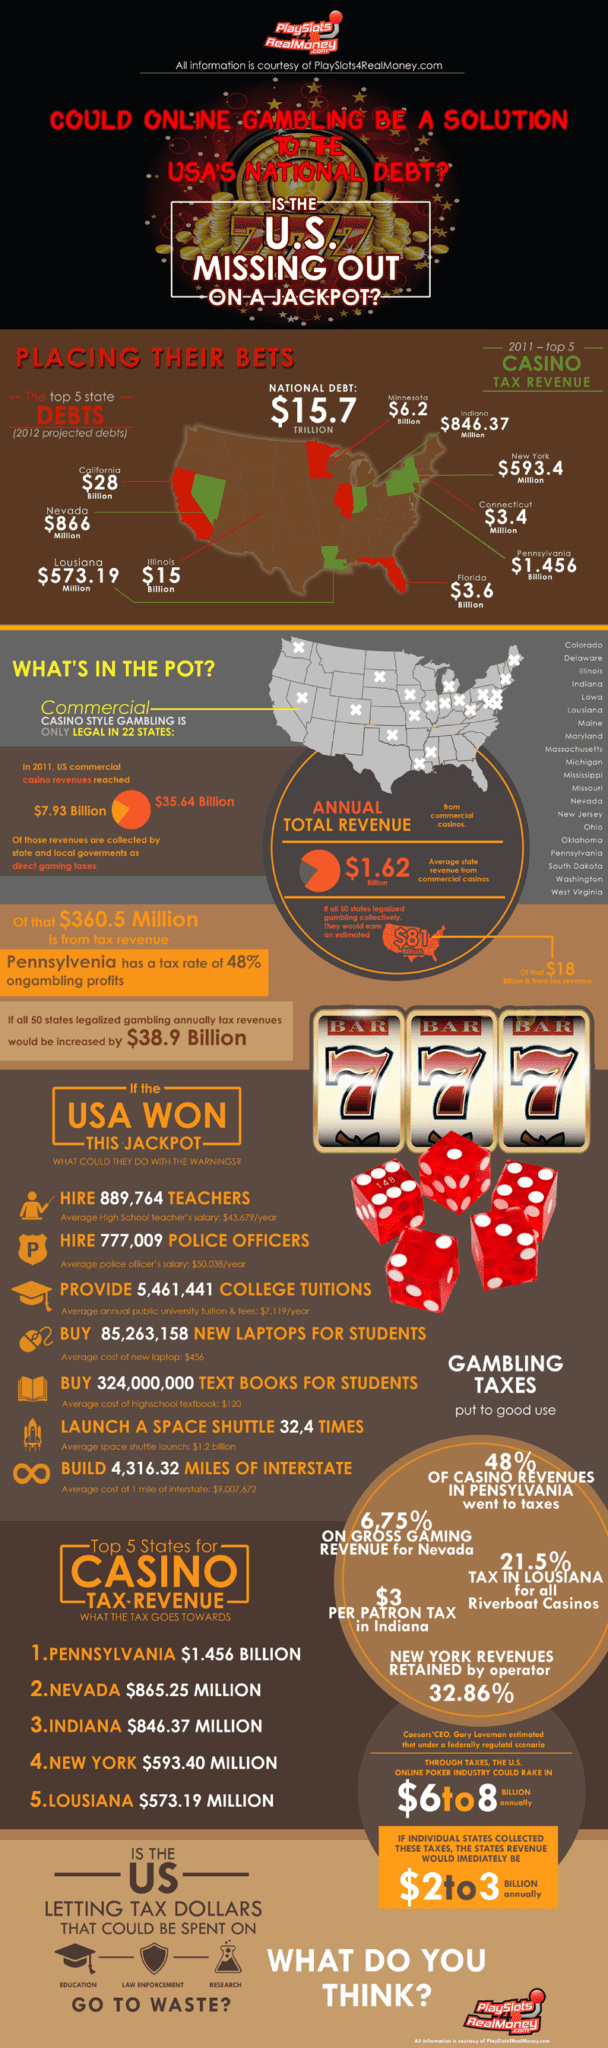 best us online casino gaming seite